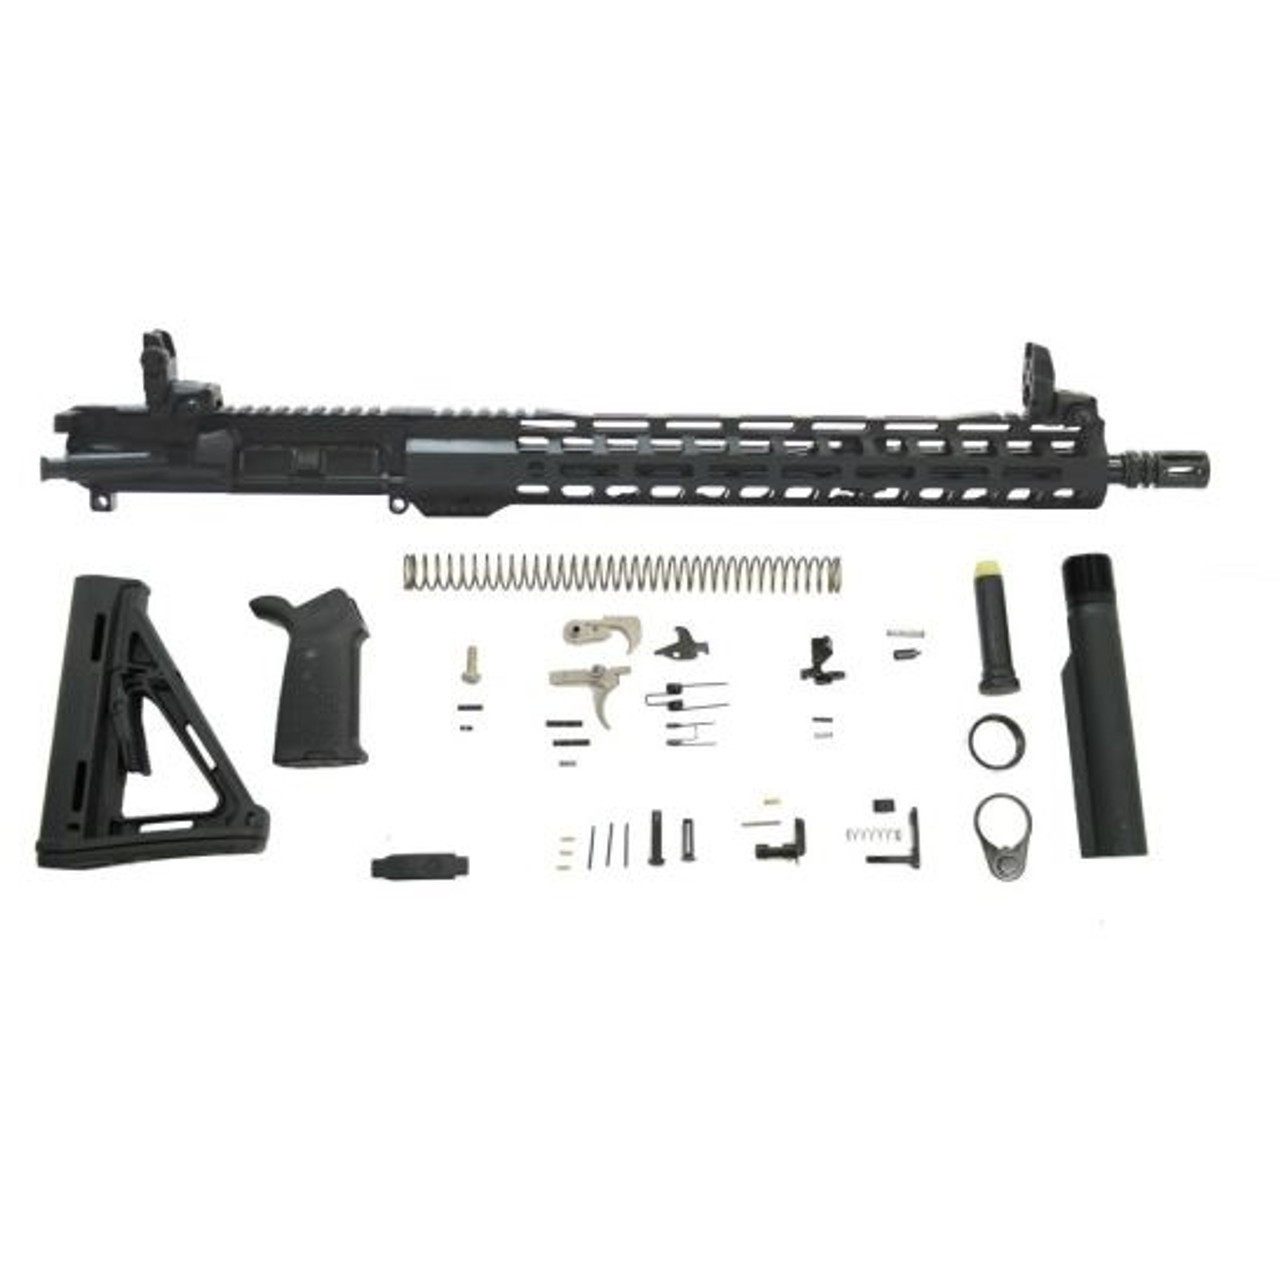 PSA Rifle Kit 16in/MidLength  Magpul MOE/EPT CALIFORNIA LEGAL - 5.56 - NO MAGAZINE OR AR MAGLOCK